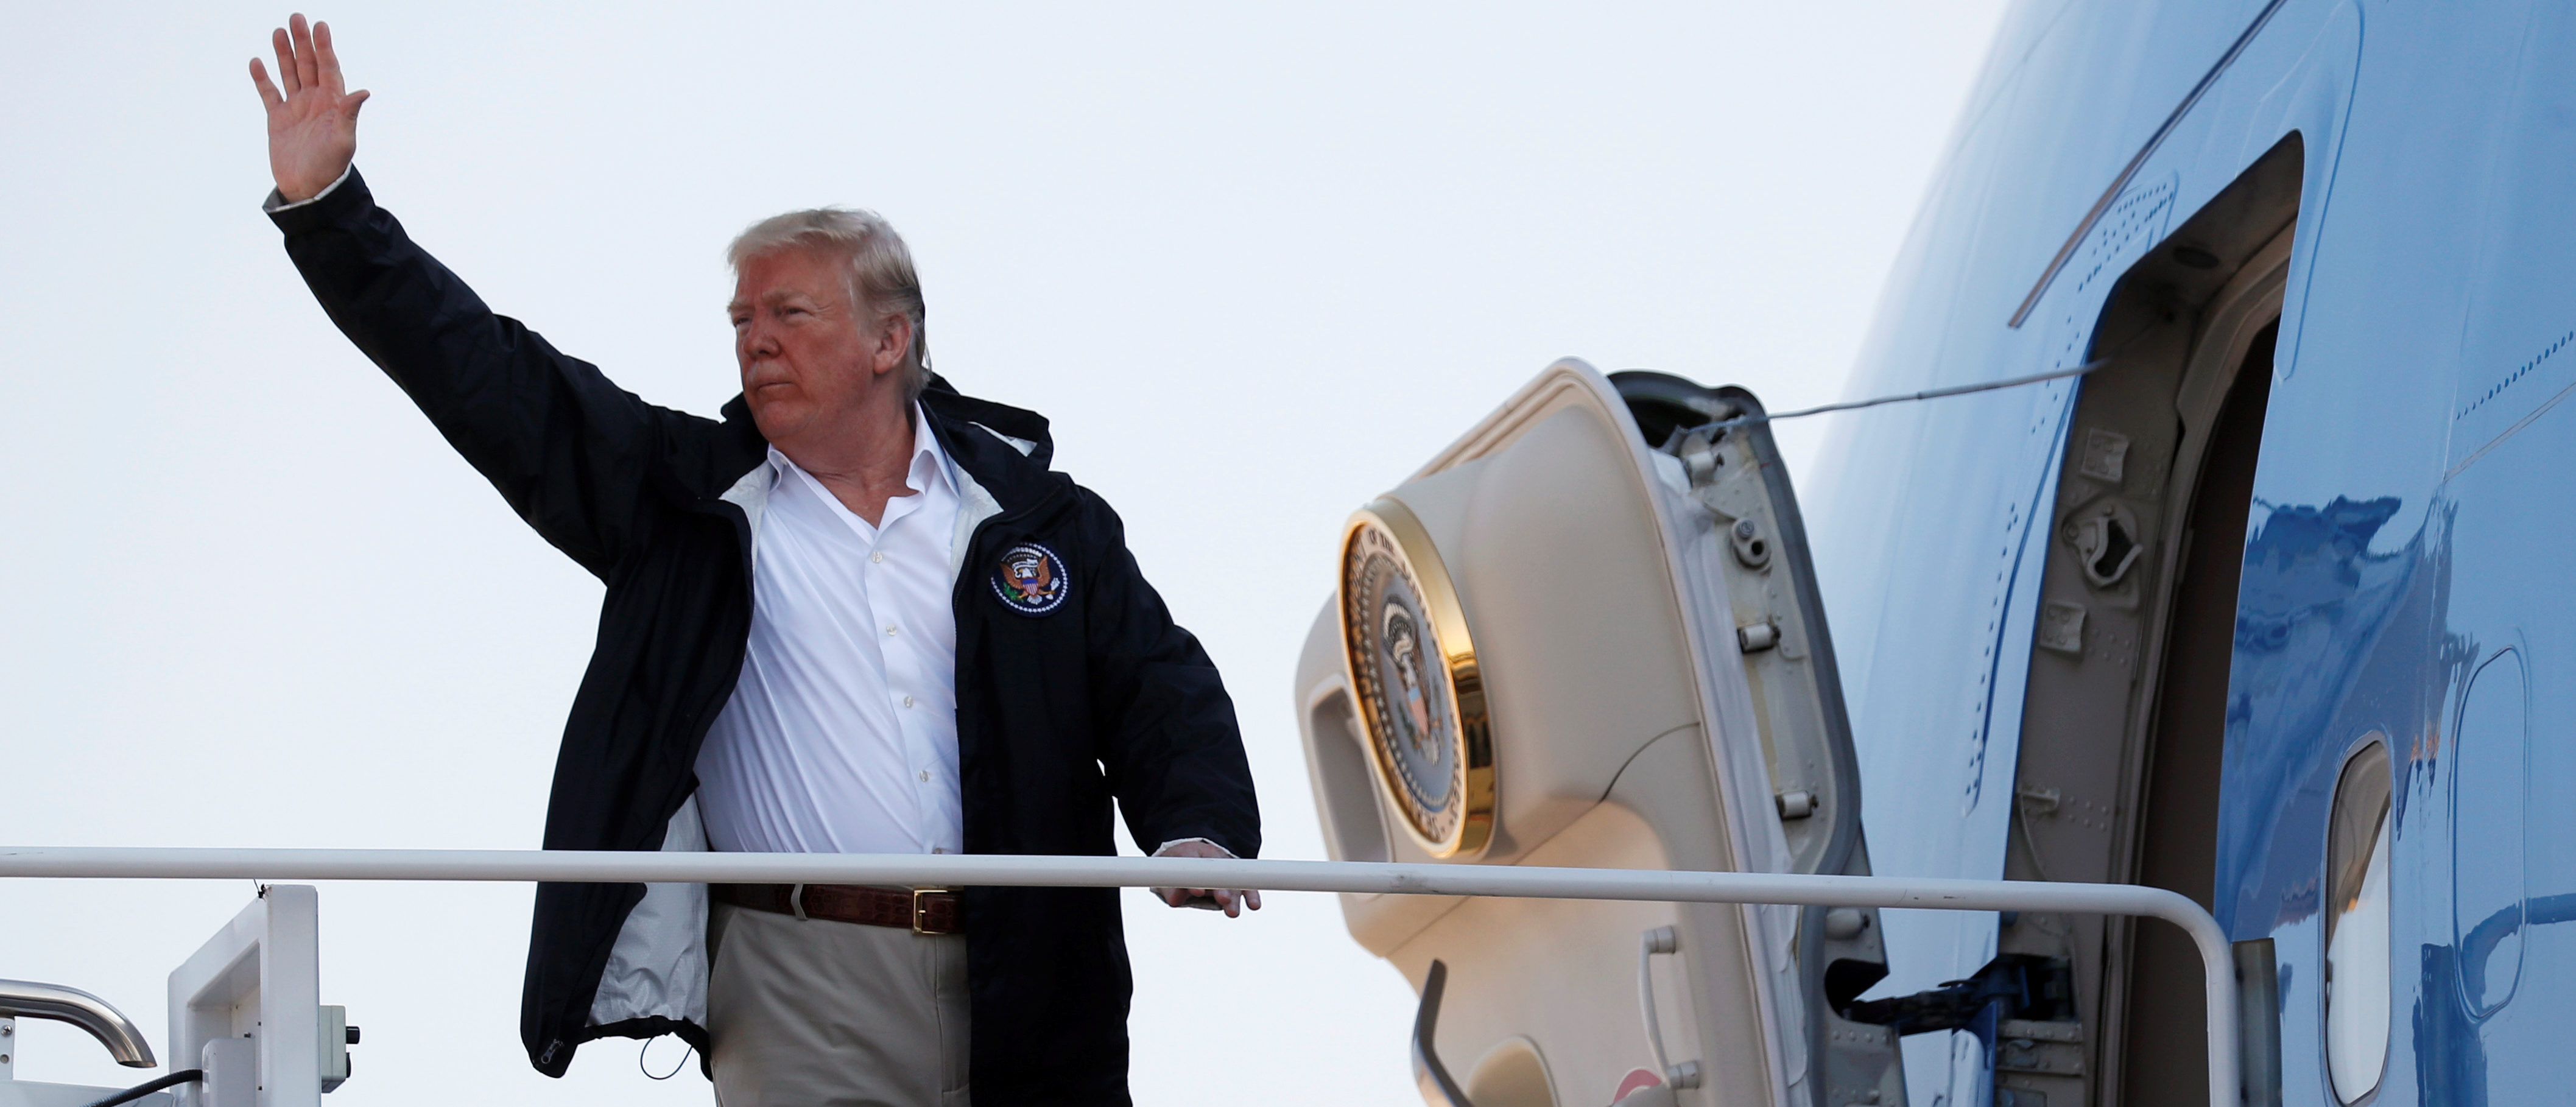 U.S. President Donald Trump boards Air Force One as he departs Joint Base Andrews in Maryland, U.S., on his way to visit areas affected by Hurricane Florence in North and South Carolina September 19, 2018. REUTERS/Kevin Lamarque